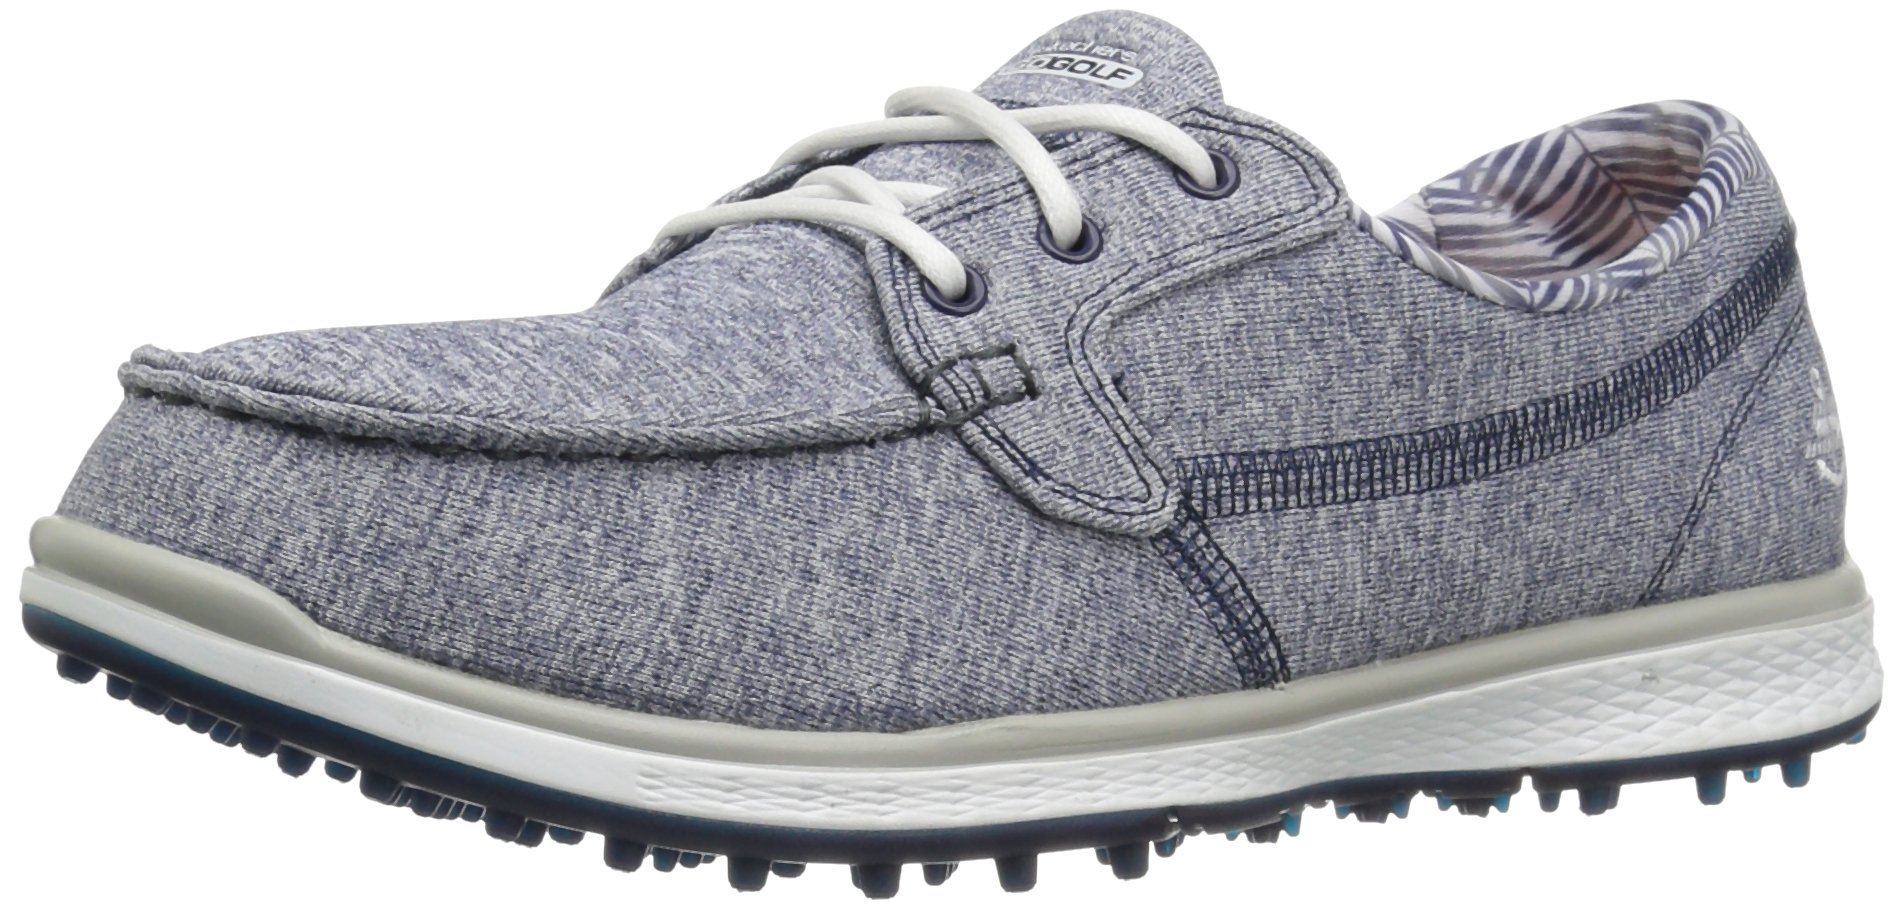 27bfac23c69 Skechers Performance Women s Go Golf Elite 2 Stellar Golf Shoe product image